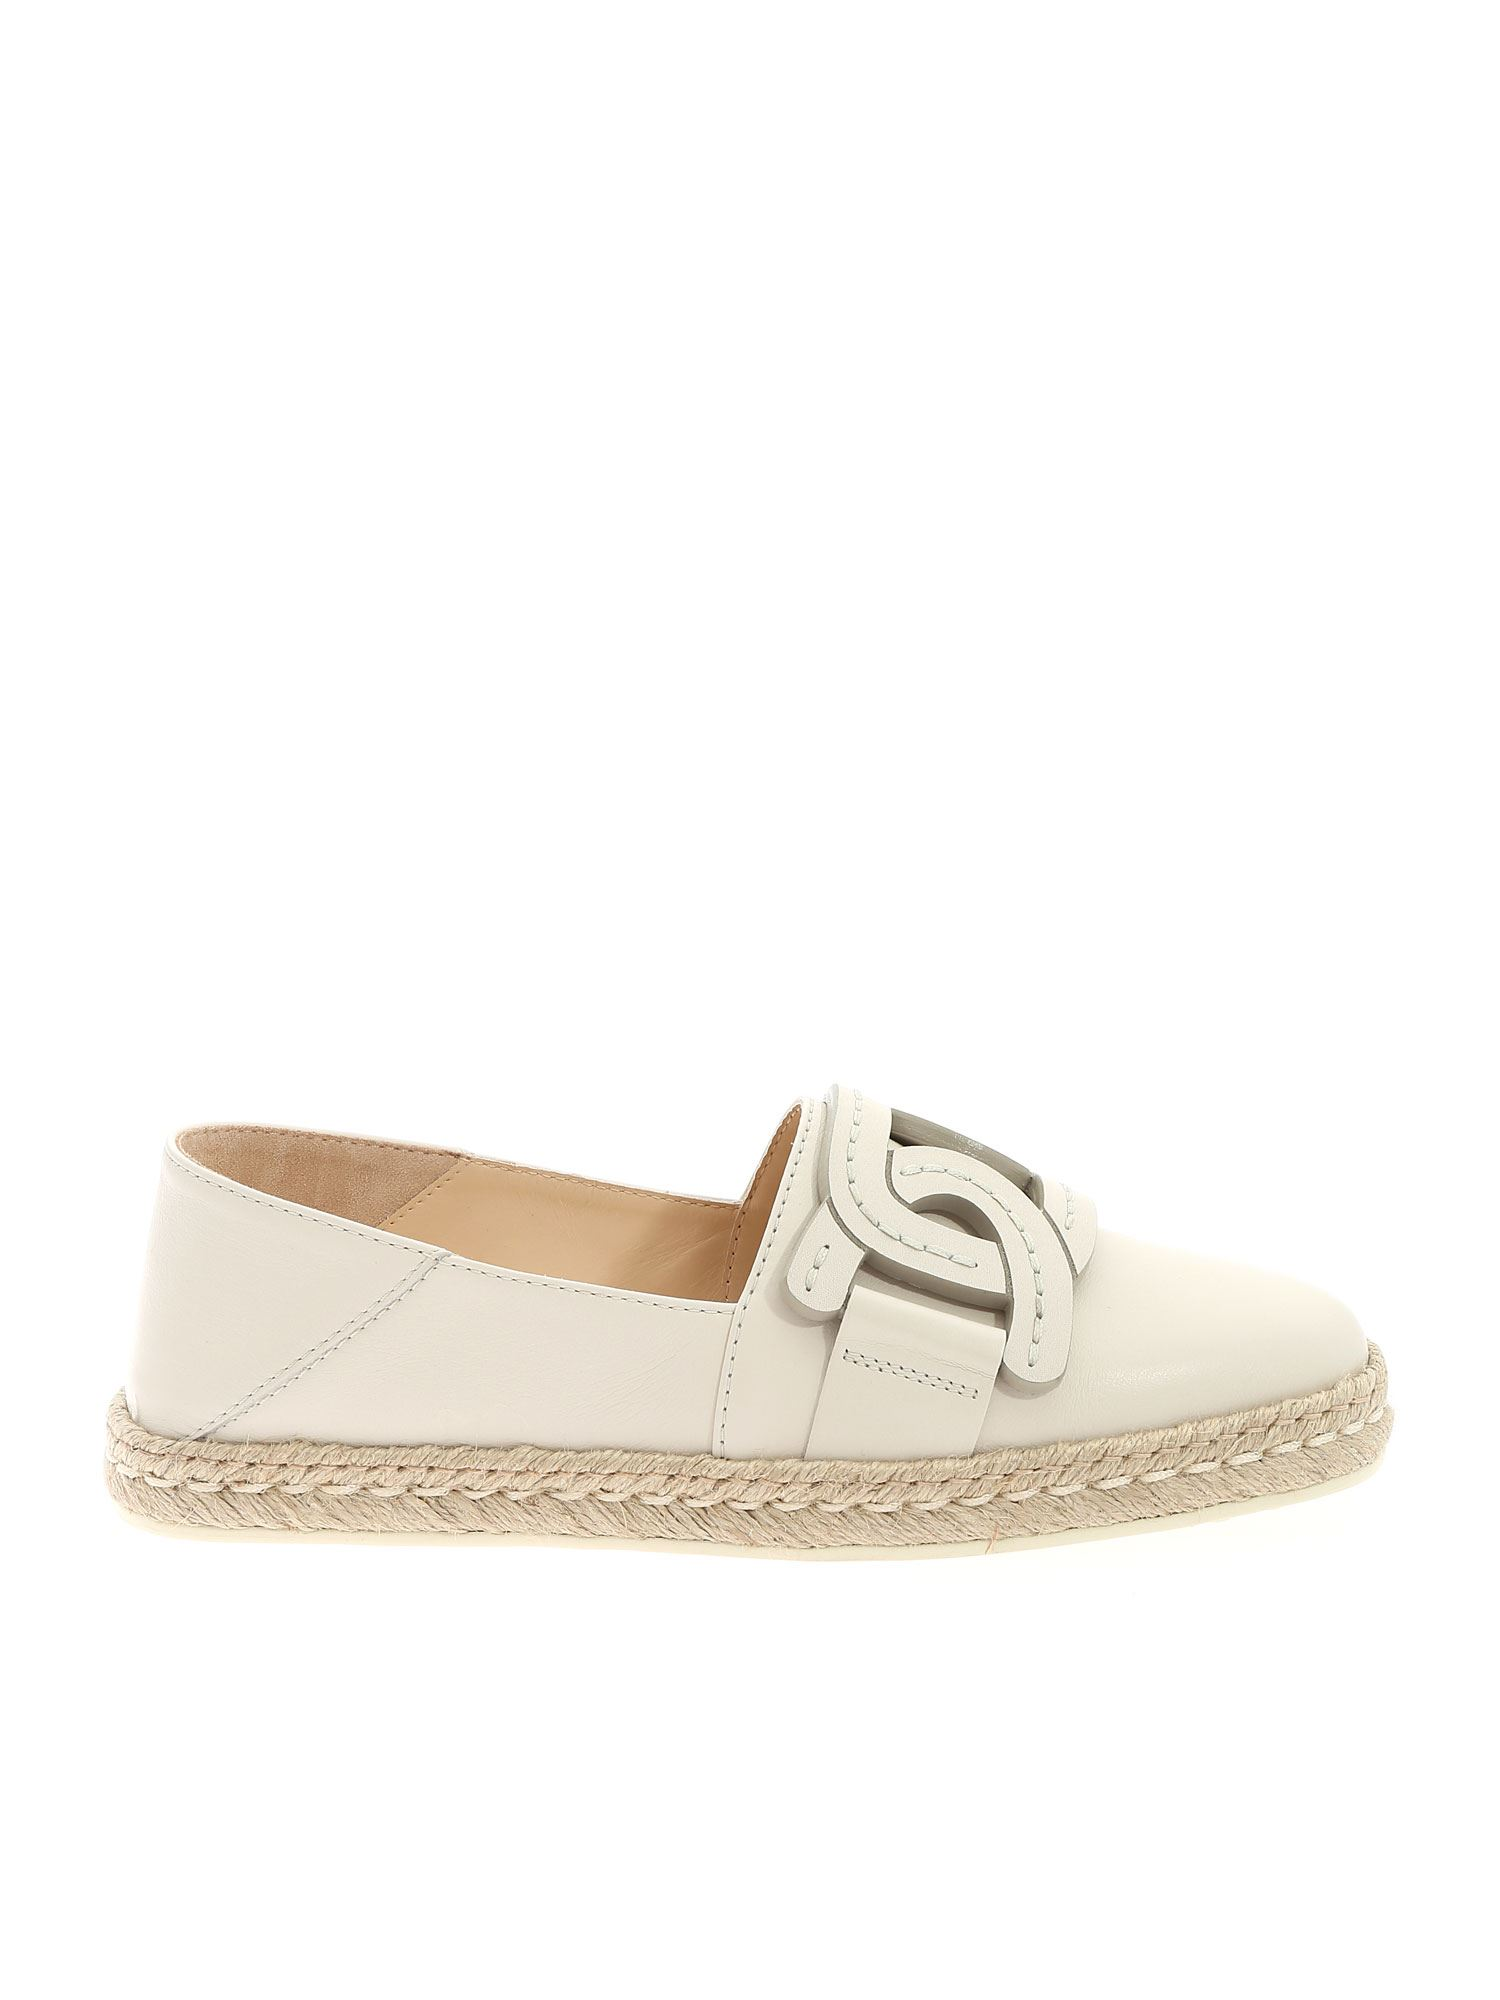 Tod's Leathers CHAIN ESPADRILLES IN ICE COLOR